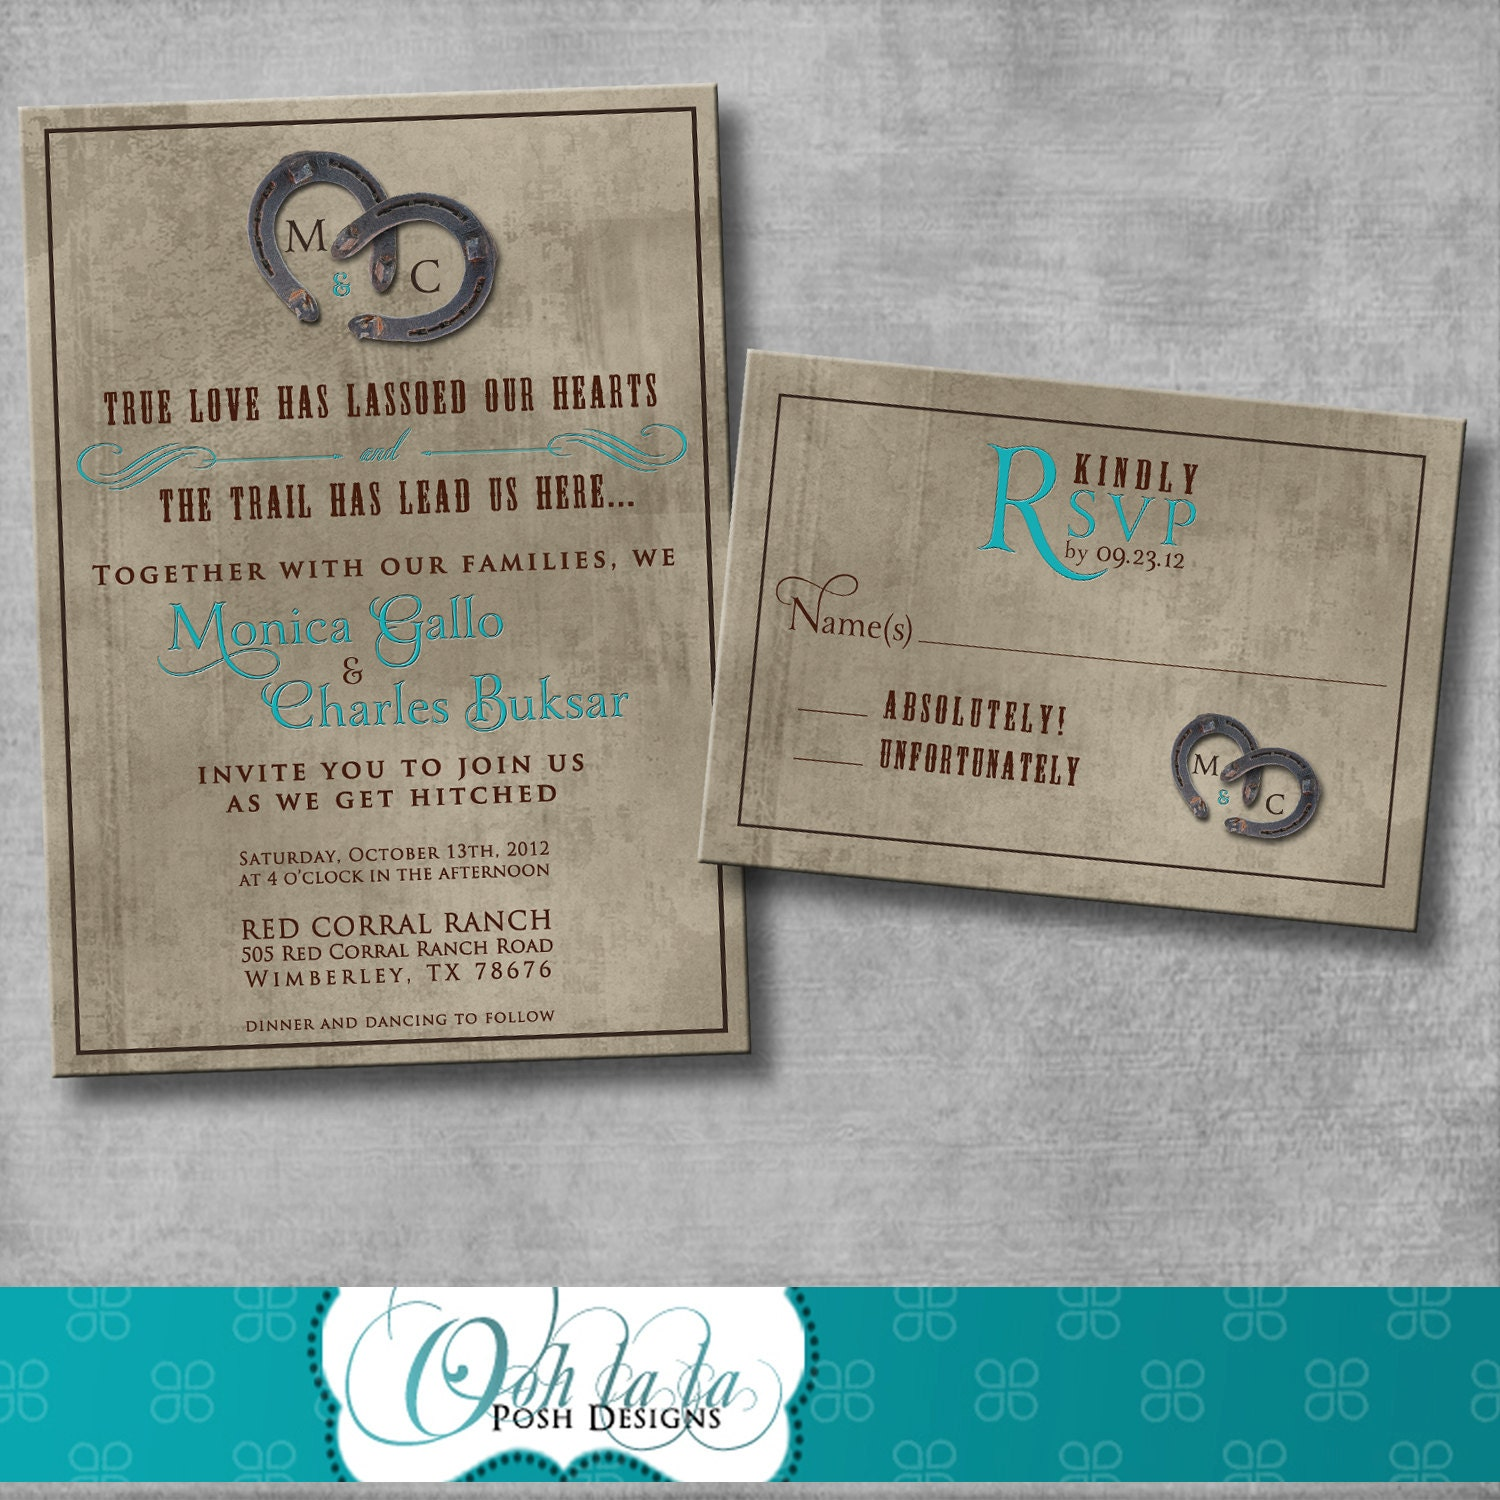 Officemax Wedding Invitations is the best ideas you have to choose for invitation example